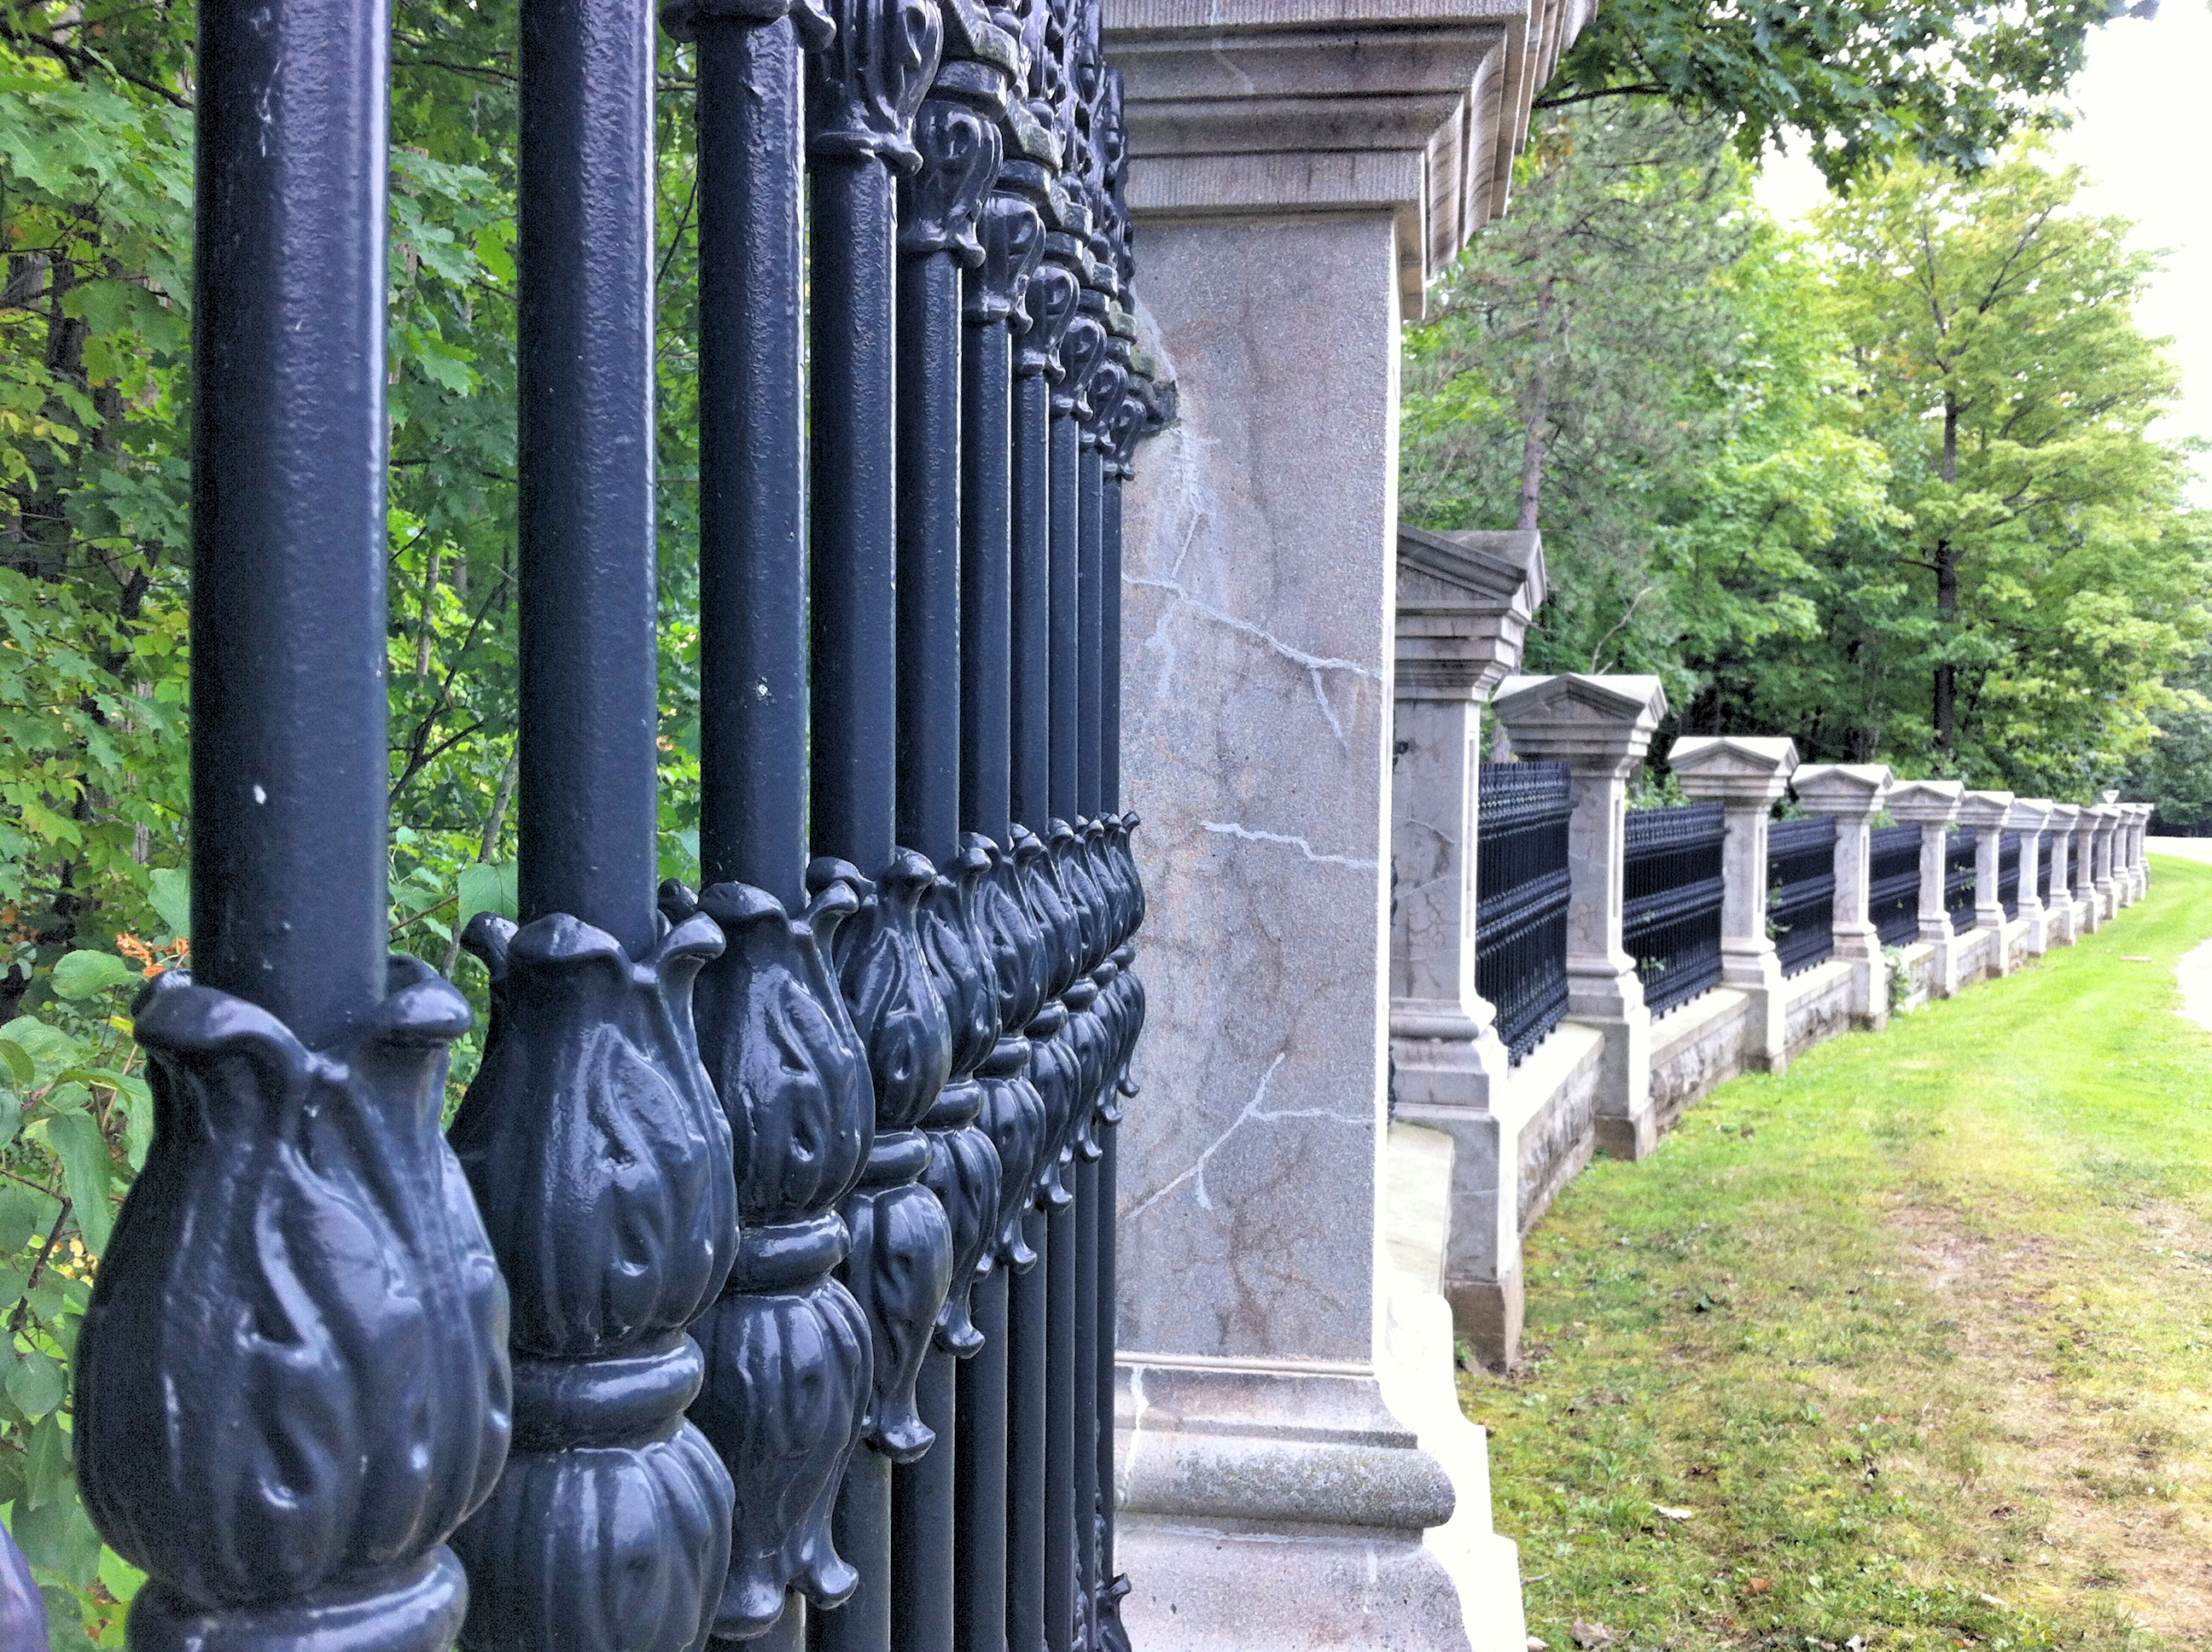 Création De Rideaux Originaux file:rideau hall wrought iron fence and posts along princess